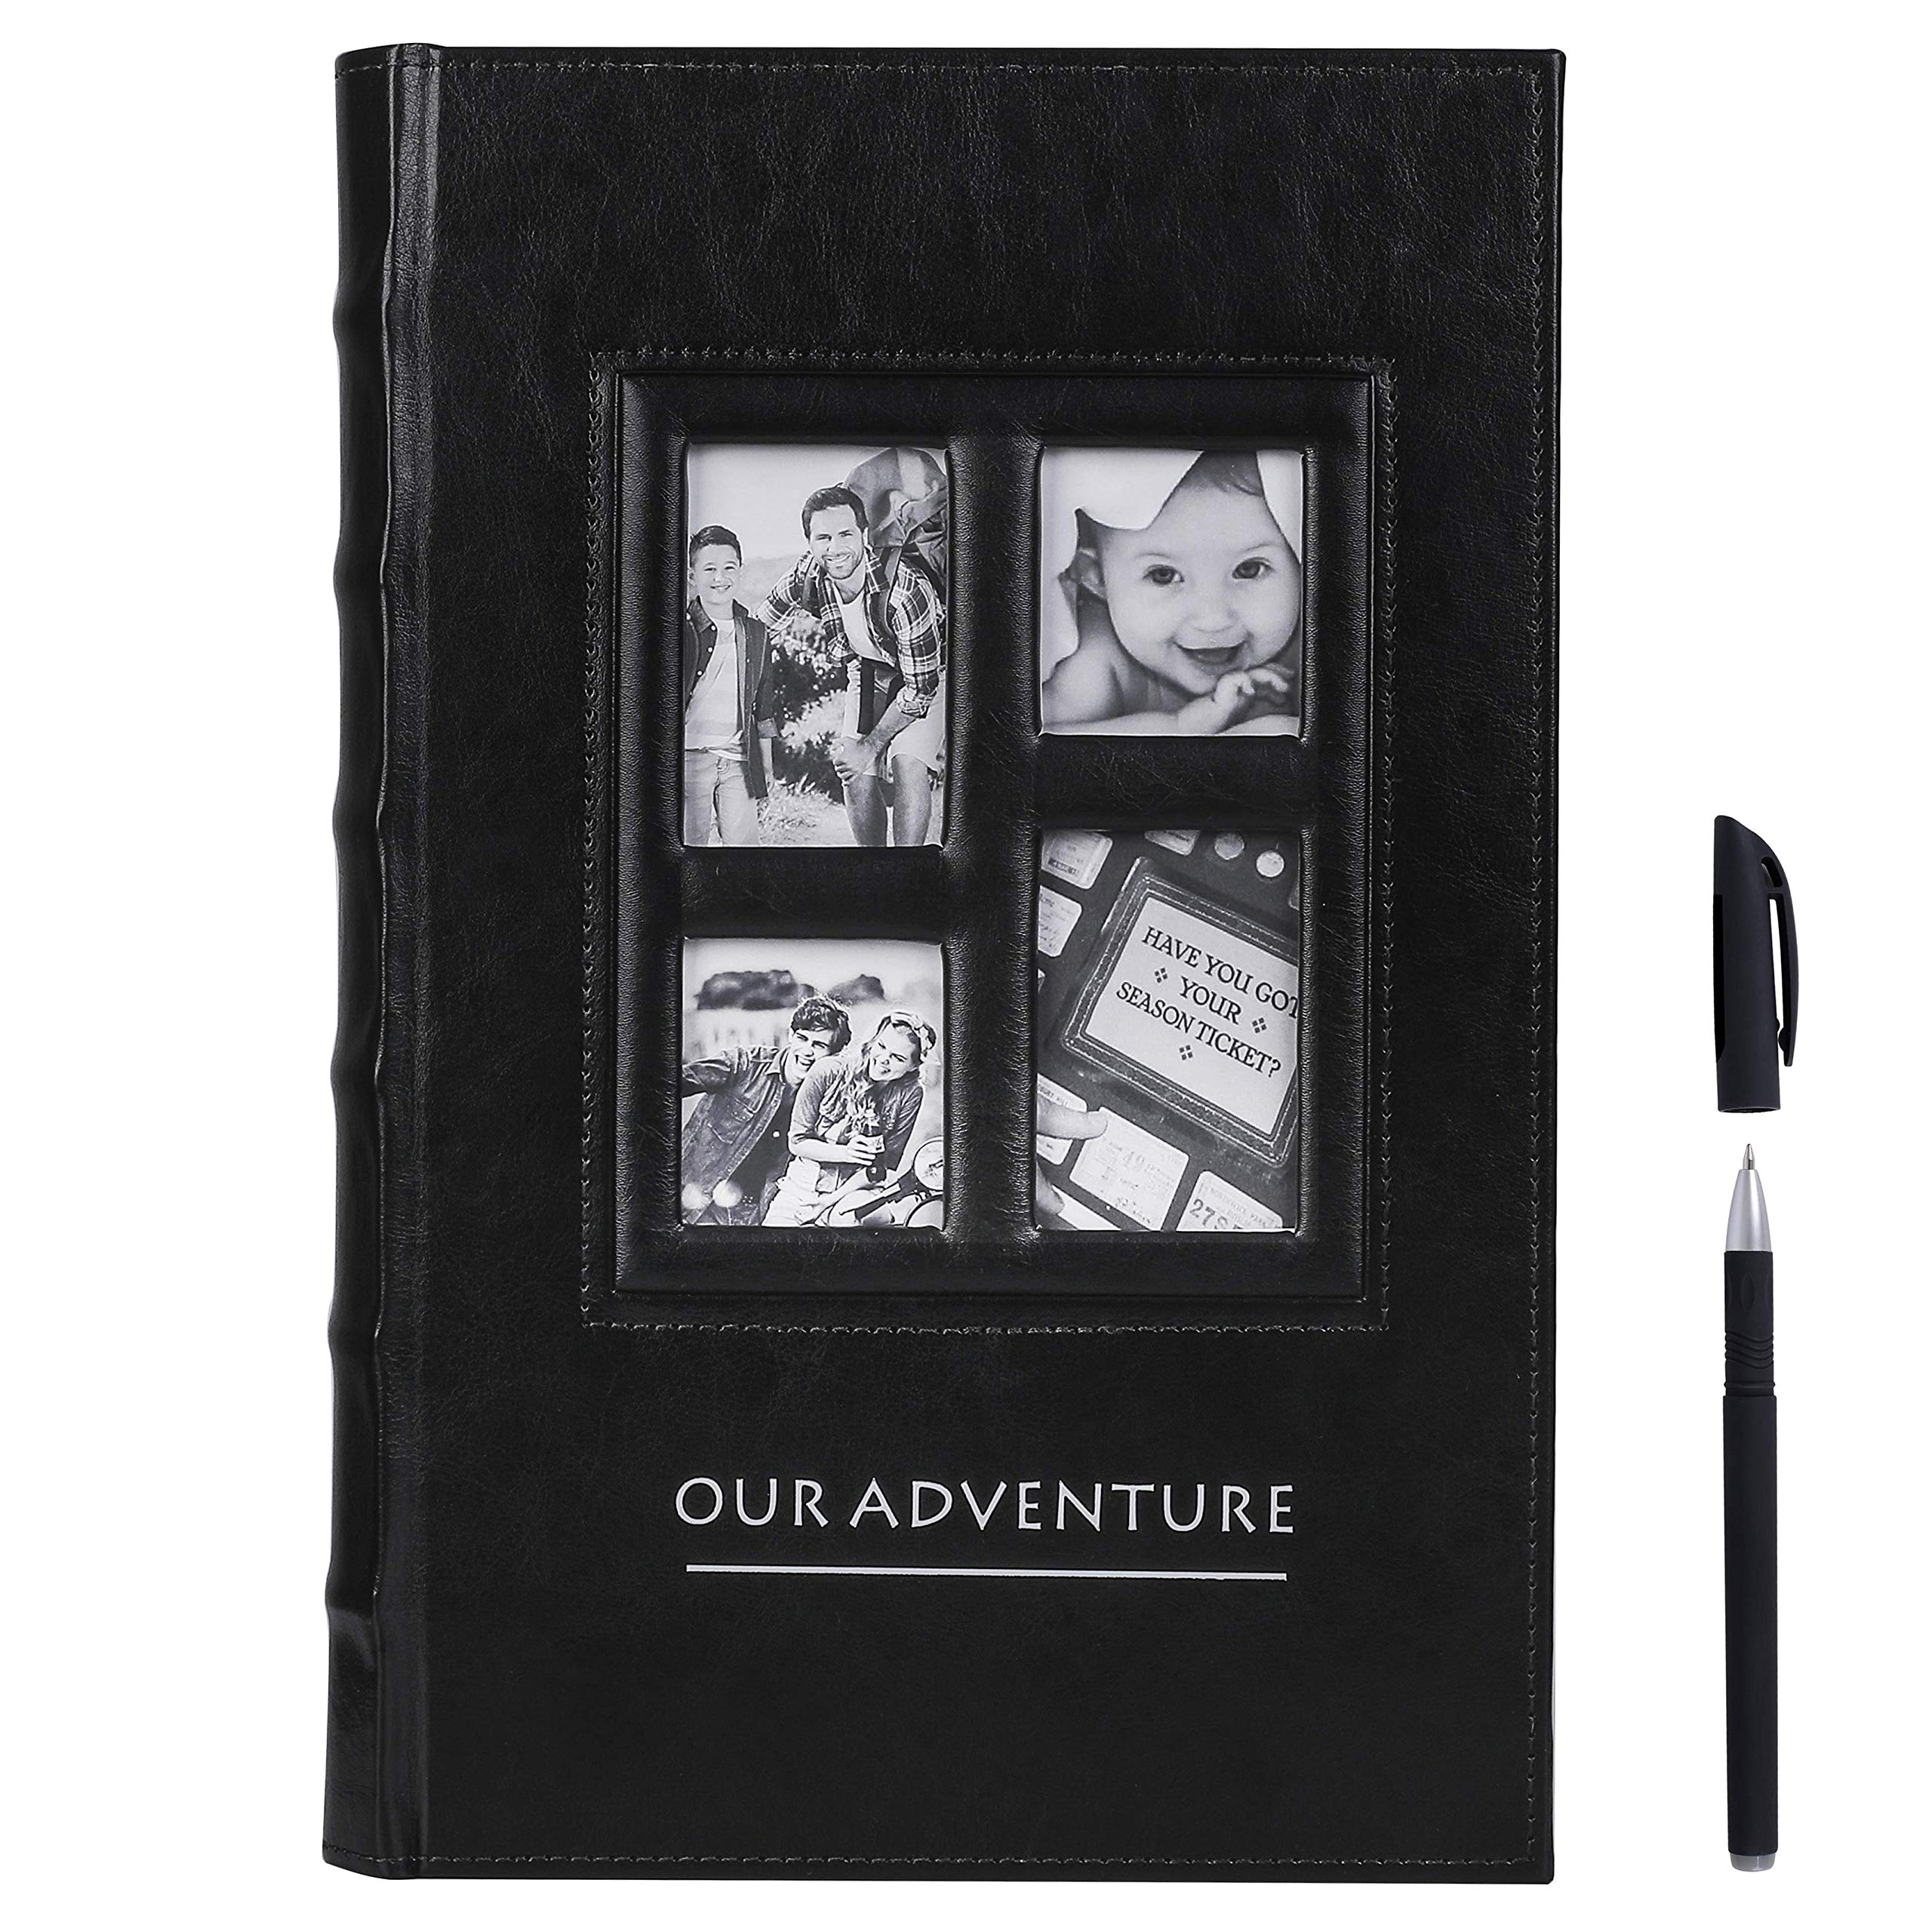 Benjia Photo Album 4x6 500 Pockets Pictures Extra Large Capacity Vintage Leather Cover Photo Albums that Holds 500 4x6 Photos Black